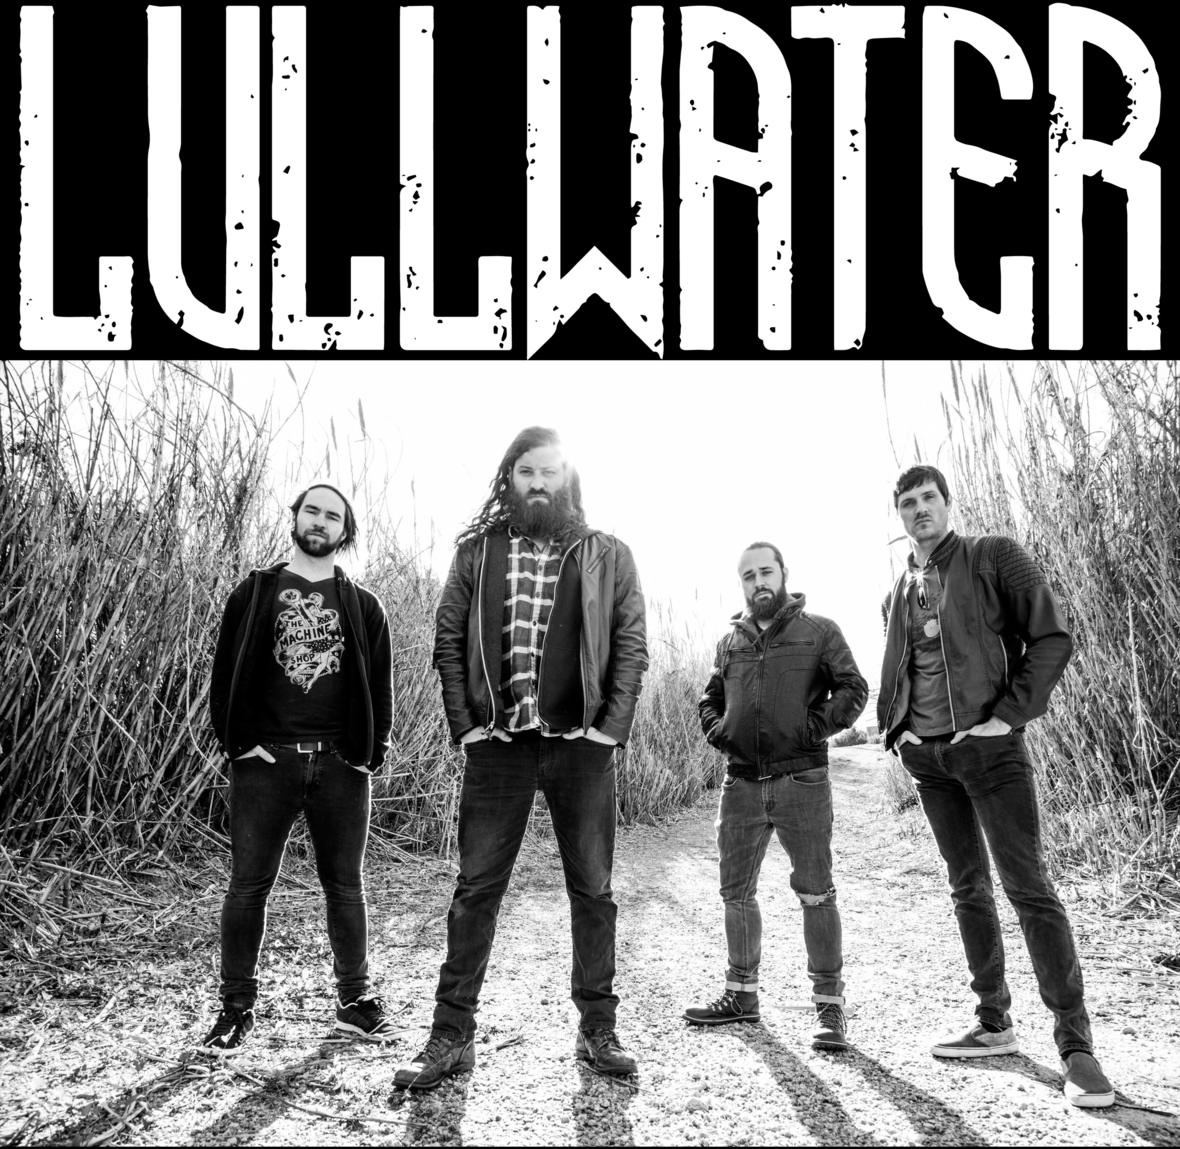 Lullwater Poster Nirvana Style 2